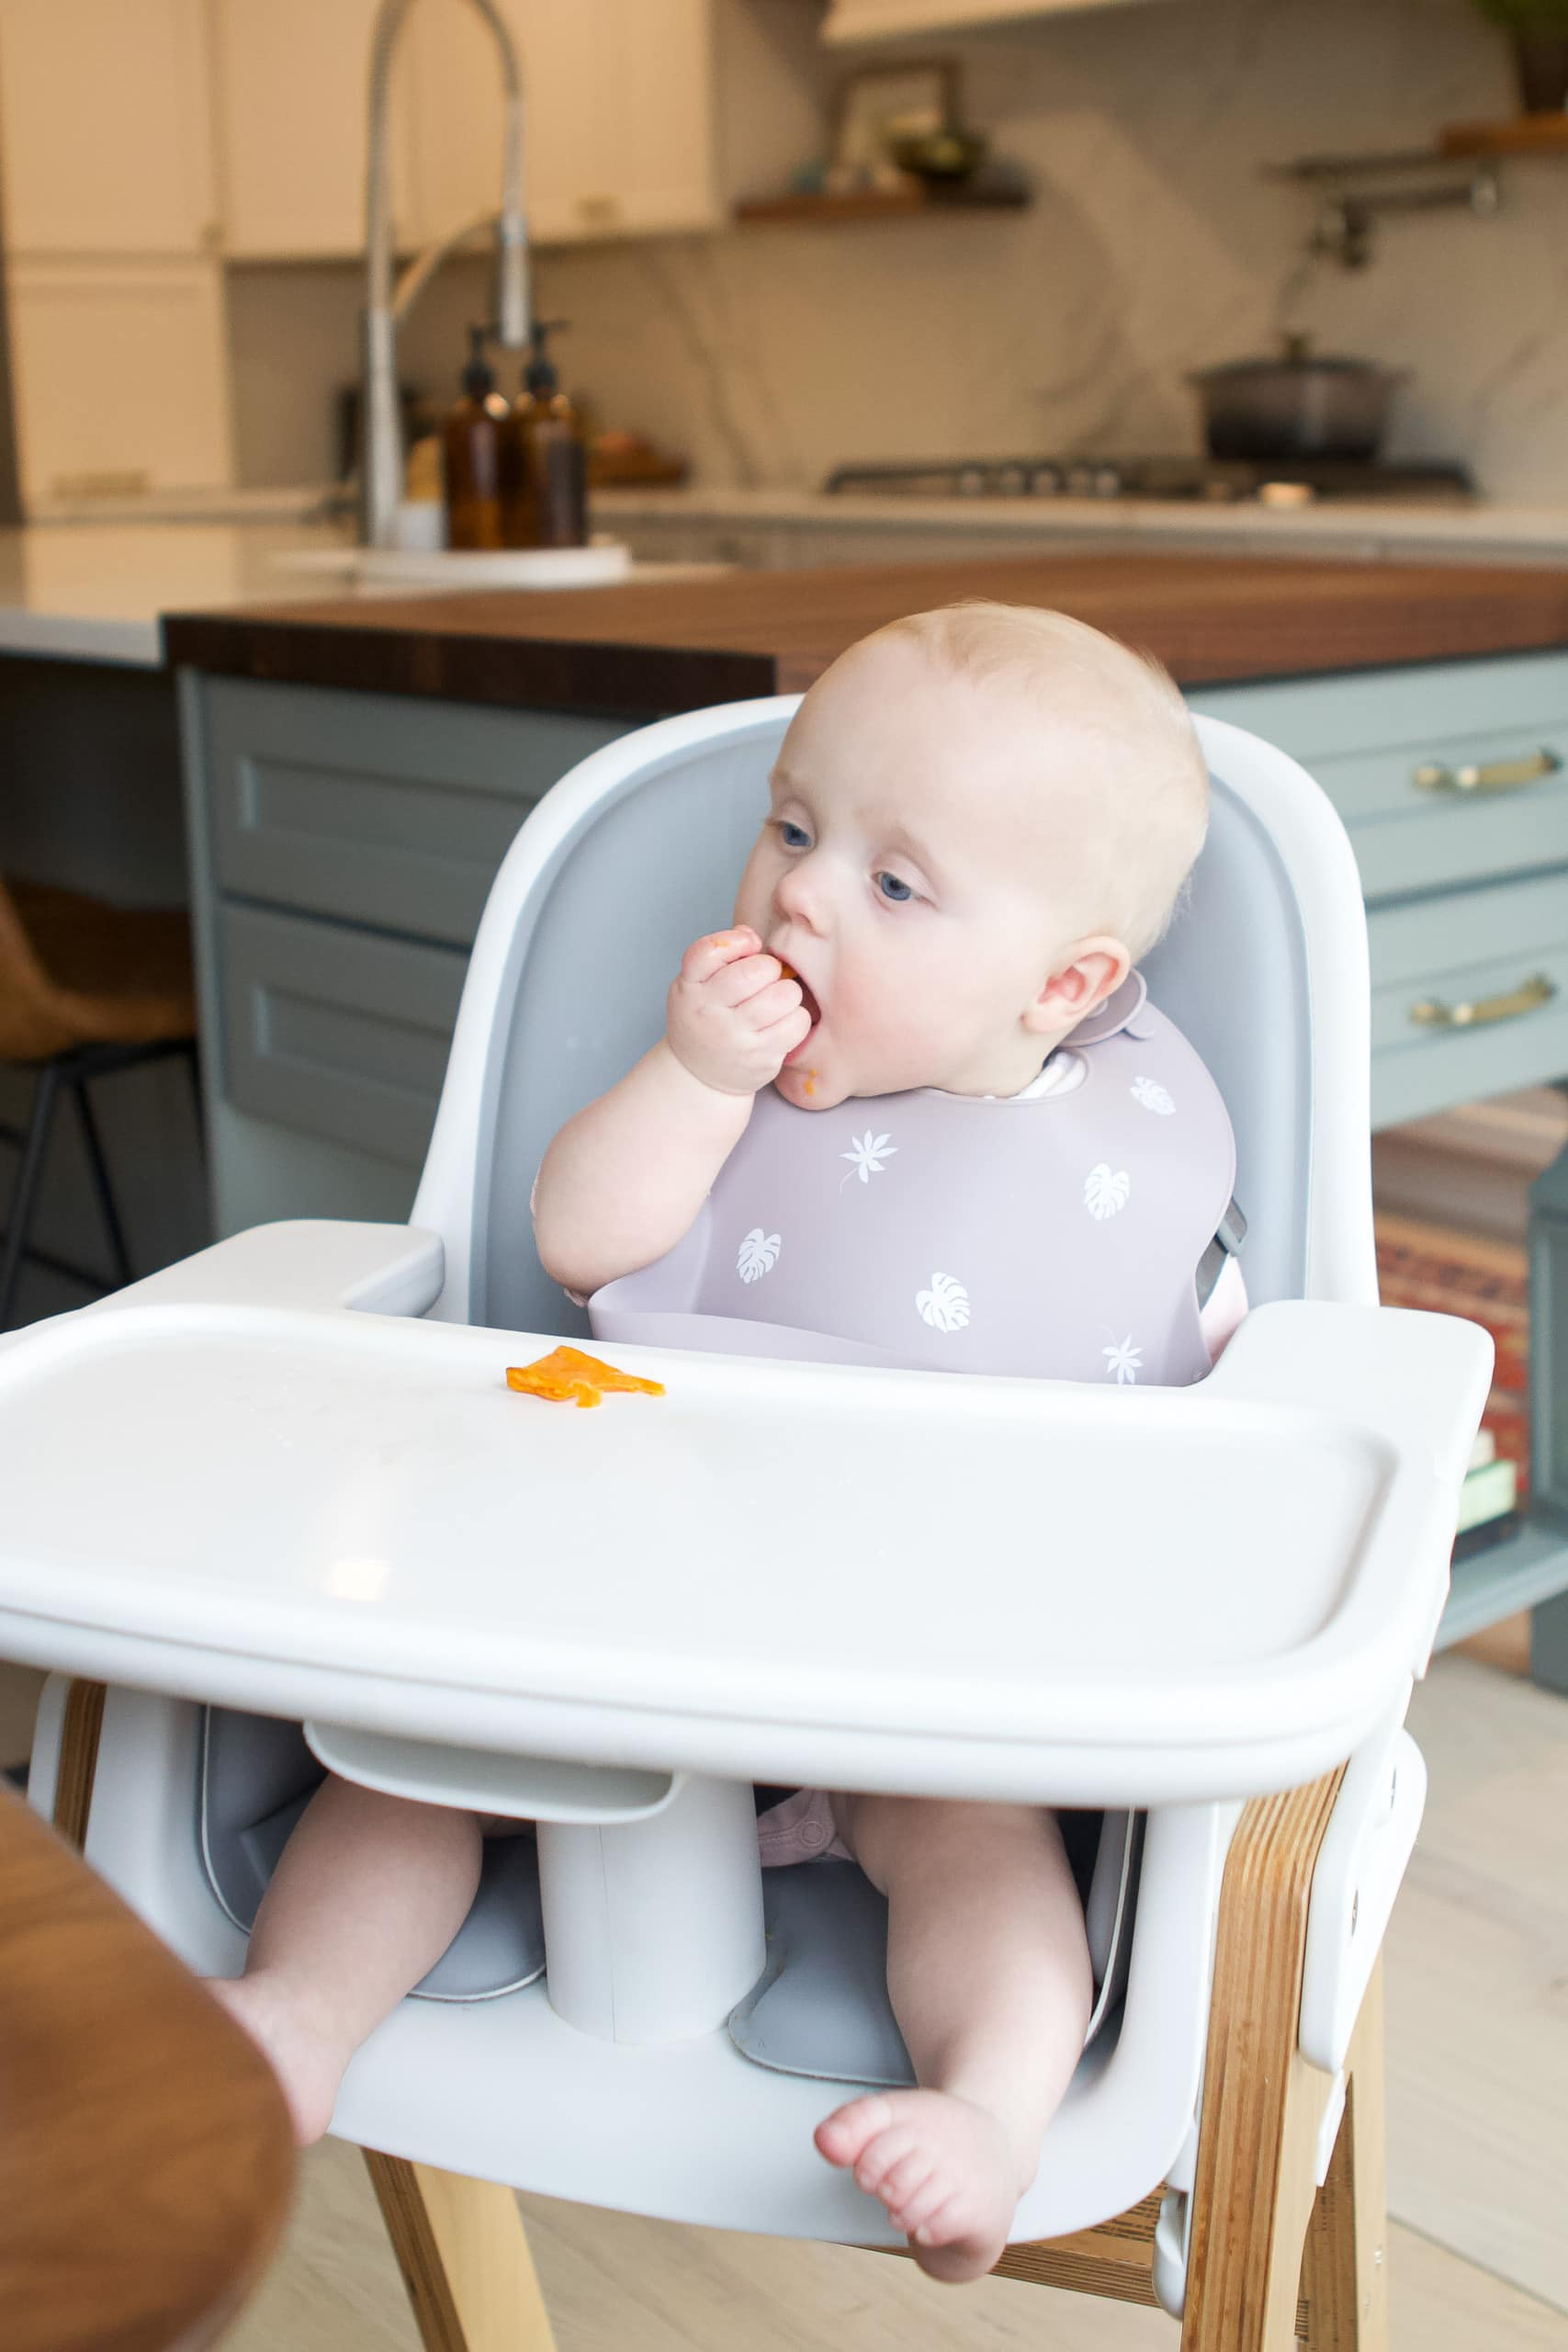 Our experience with baby led weaning